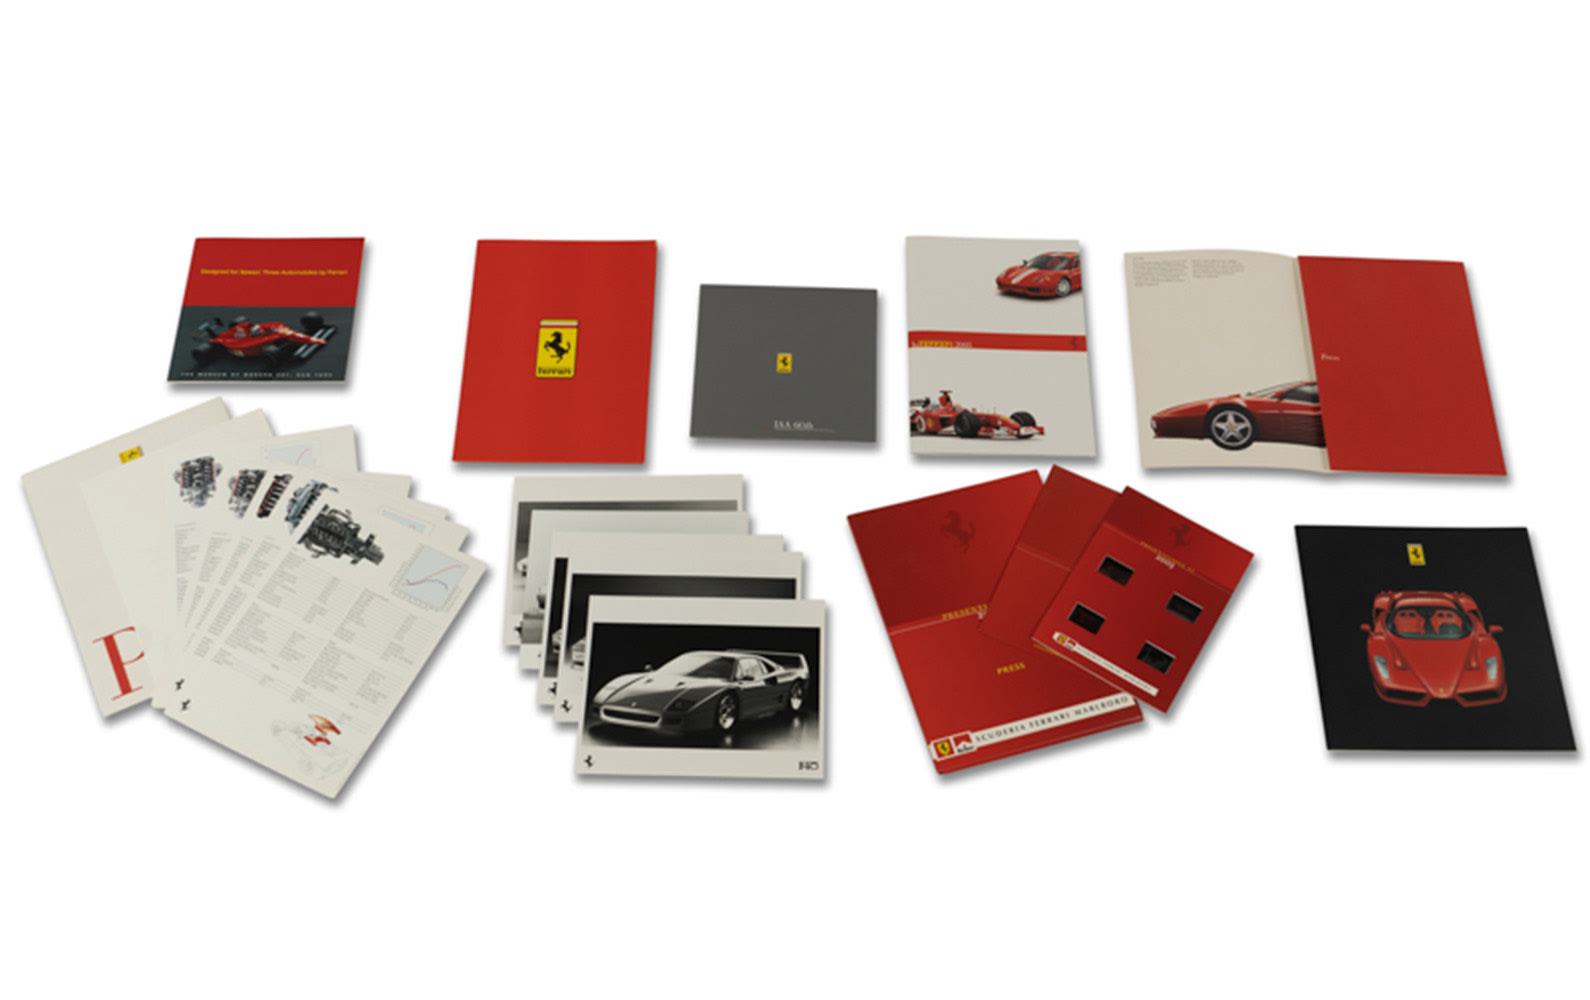 Assorted Ferrari Press and Promotional Materials, Including 2003 Press Kit with F2003-GA Photo Slides